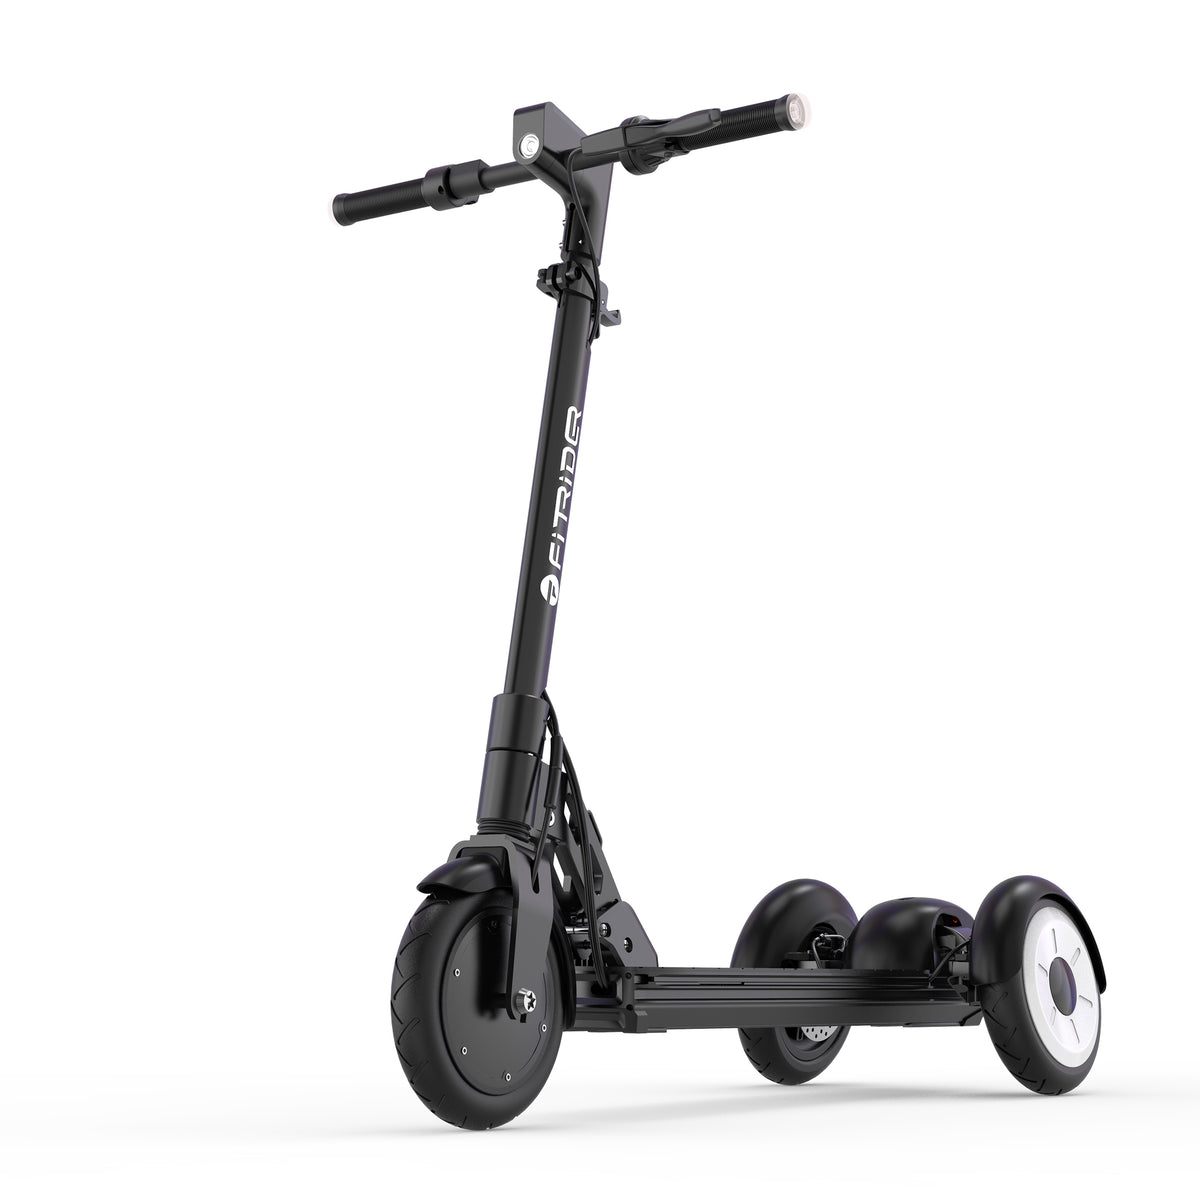 CITYBOT TRIVELA Three Wheel Folding Electric Scooter-Electric Scooters London